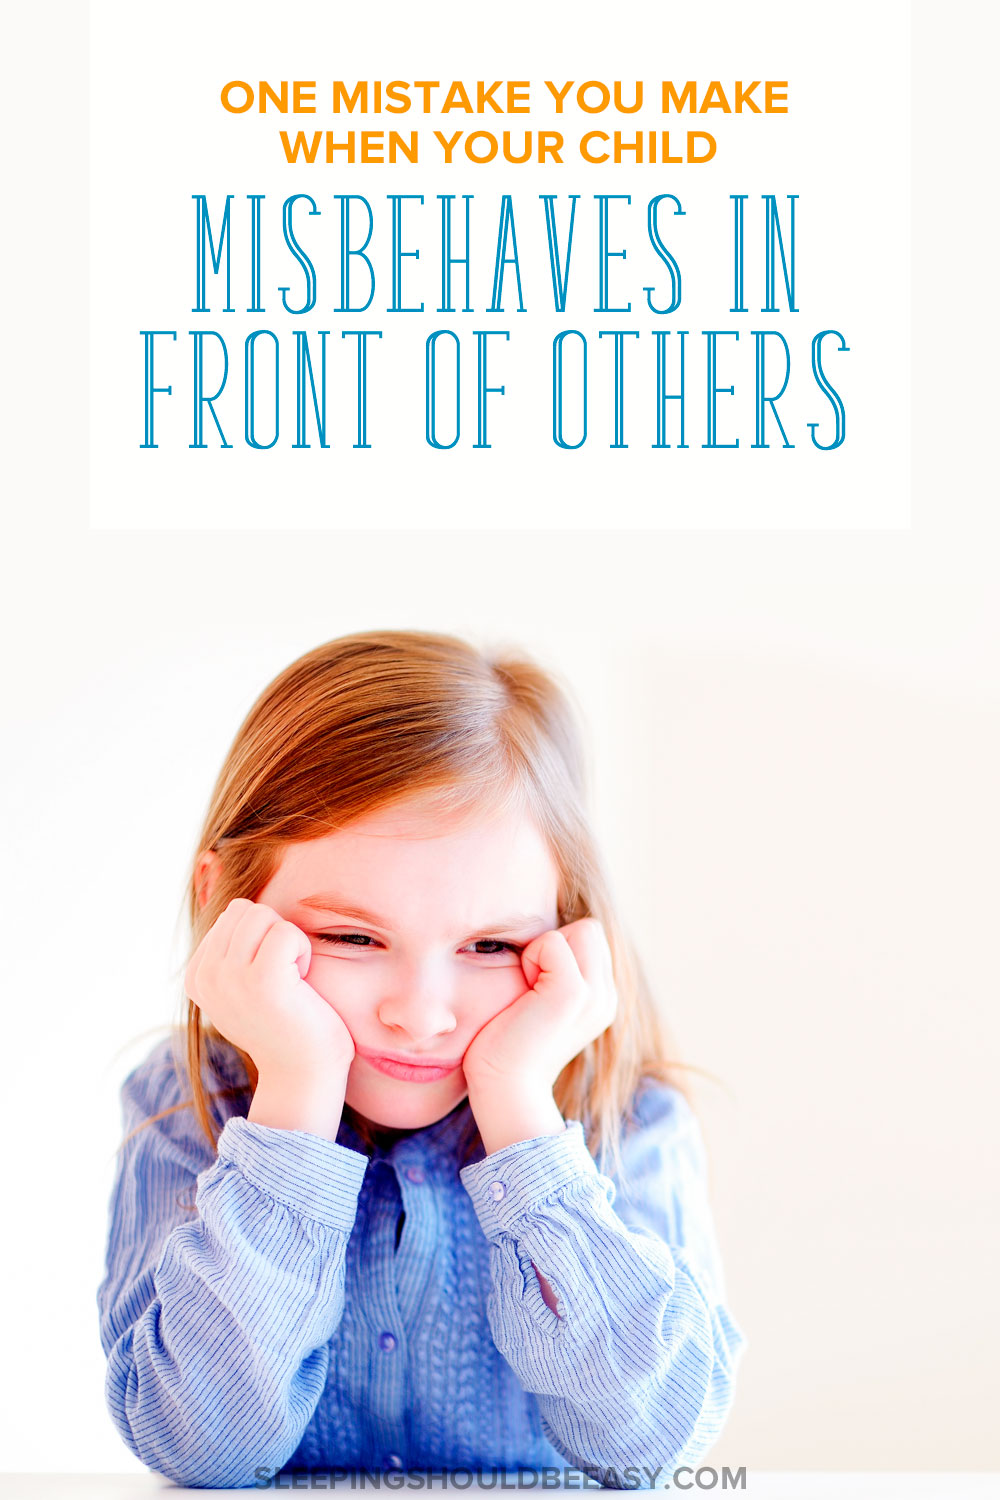 Are your kids behaving badly in front of others? It's easy to resort to making this mistake. See if you're guilty of it and what you can do instead.